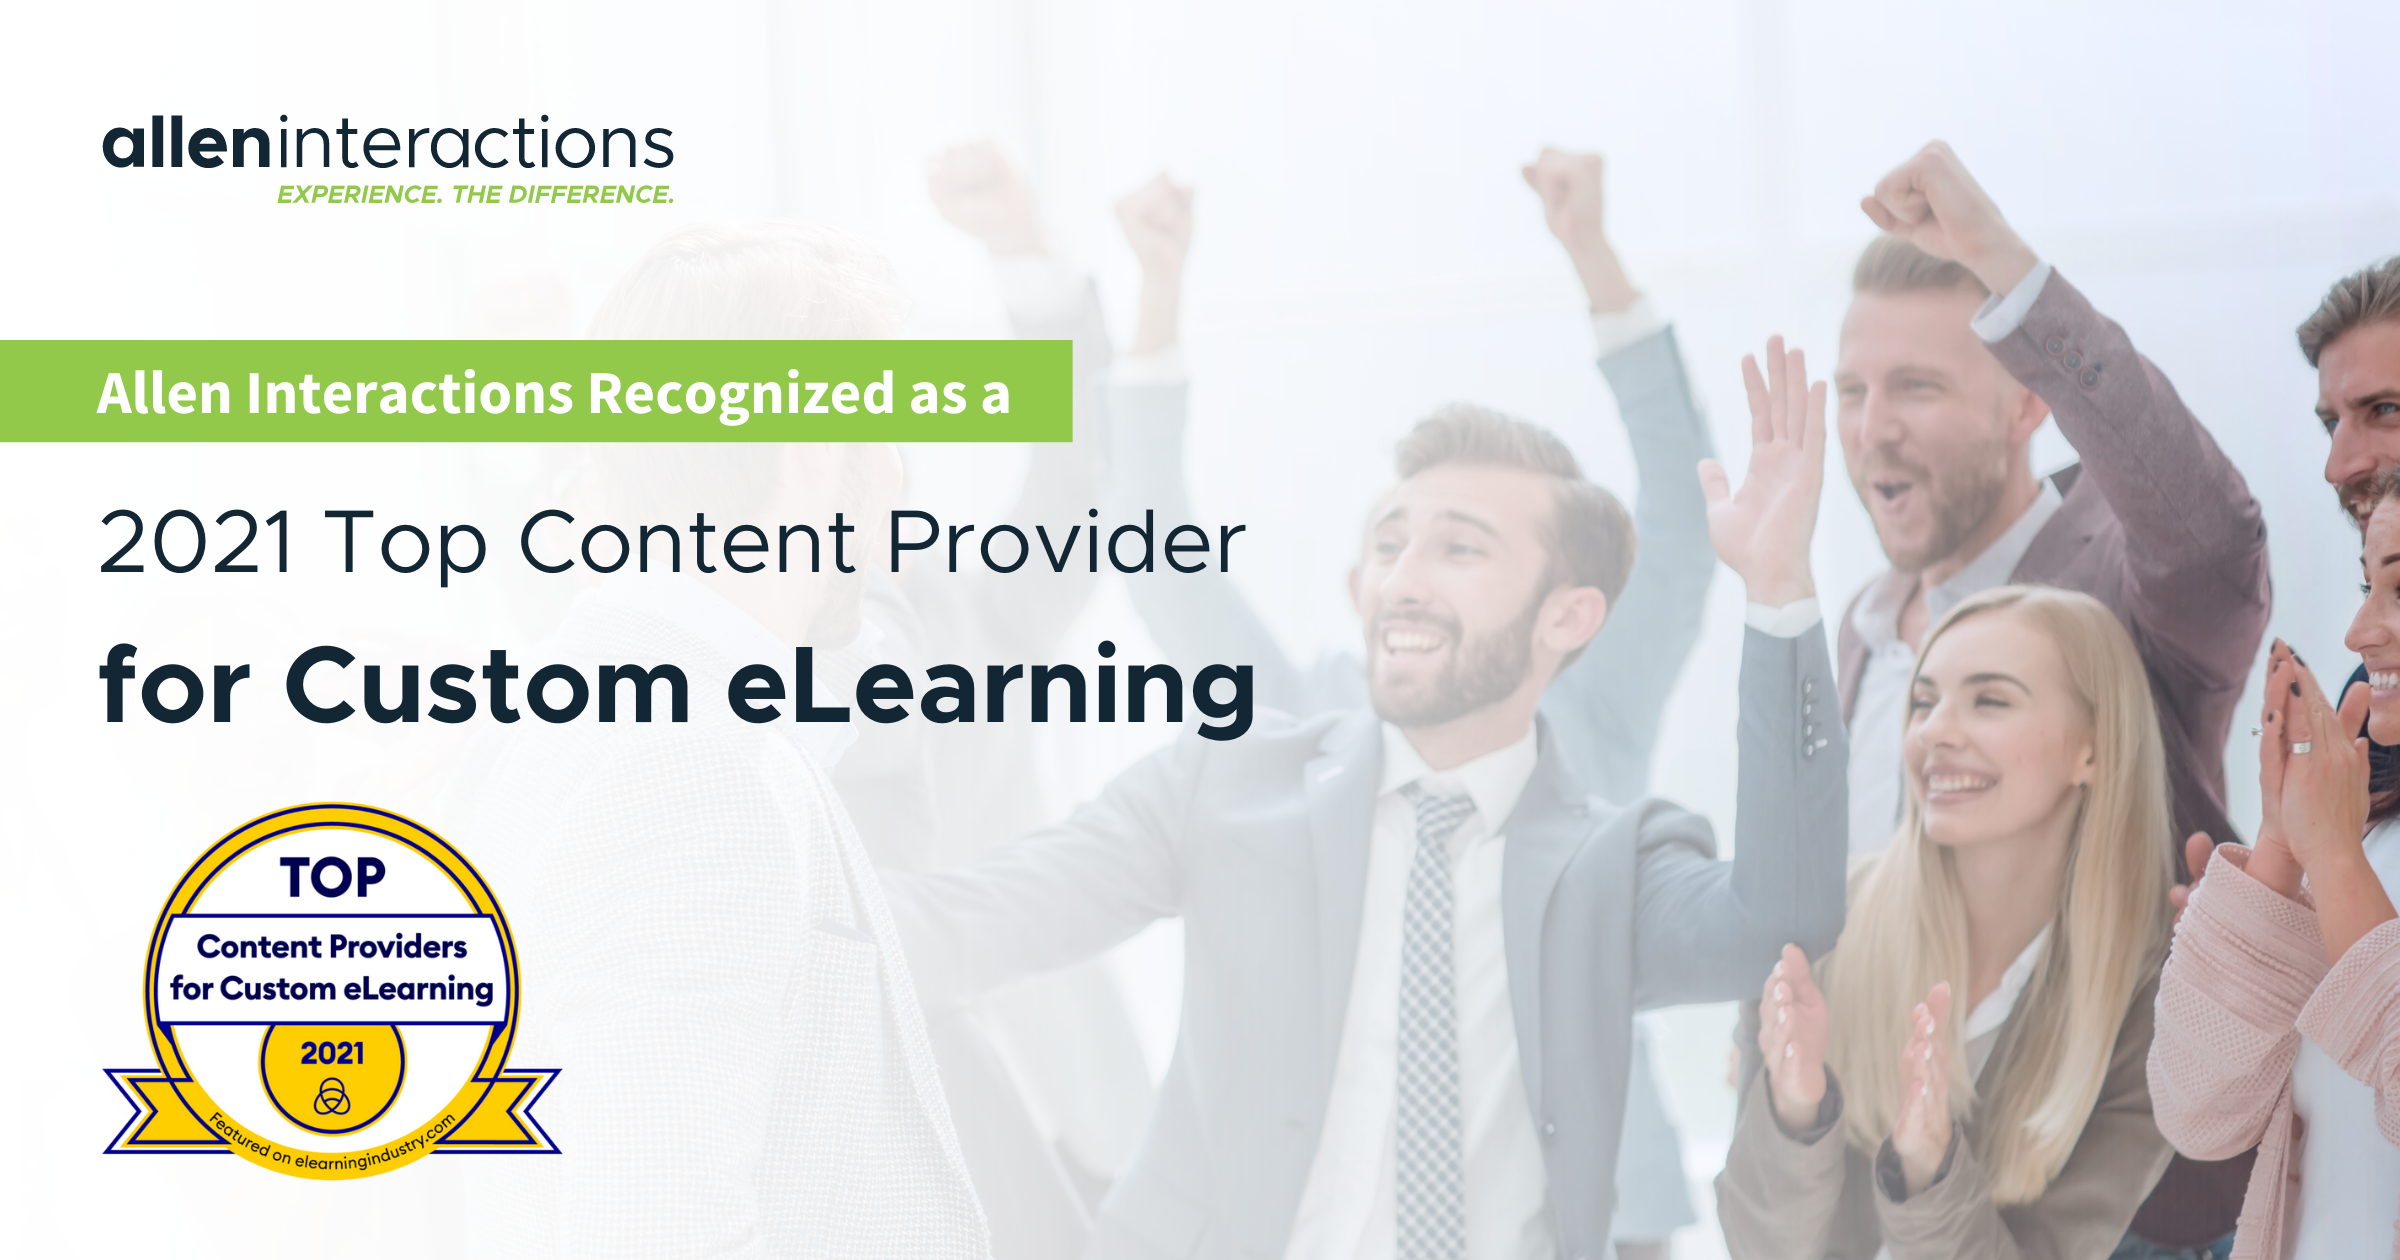 Allen Interactions Recognized by eLearning Industry as a 2021 Top Content Provider For Custom eLearning